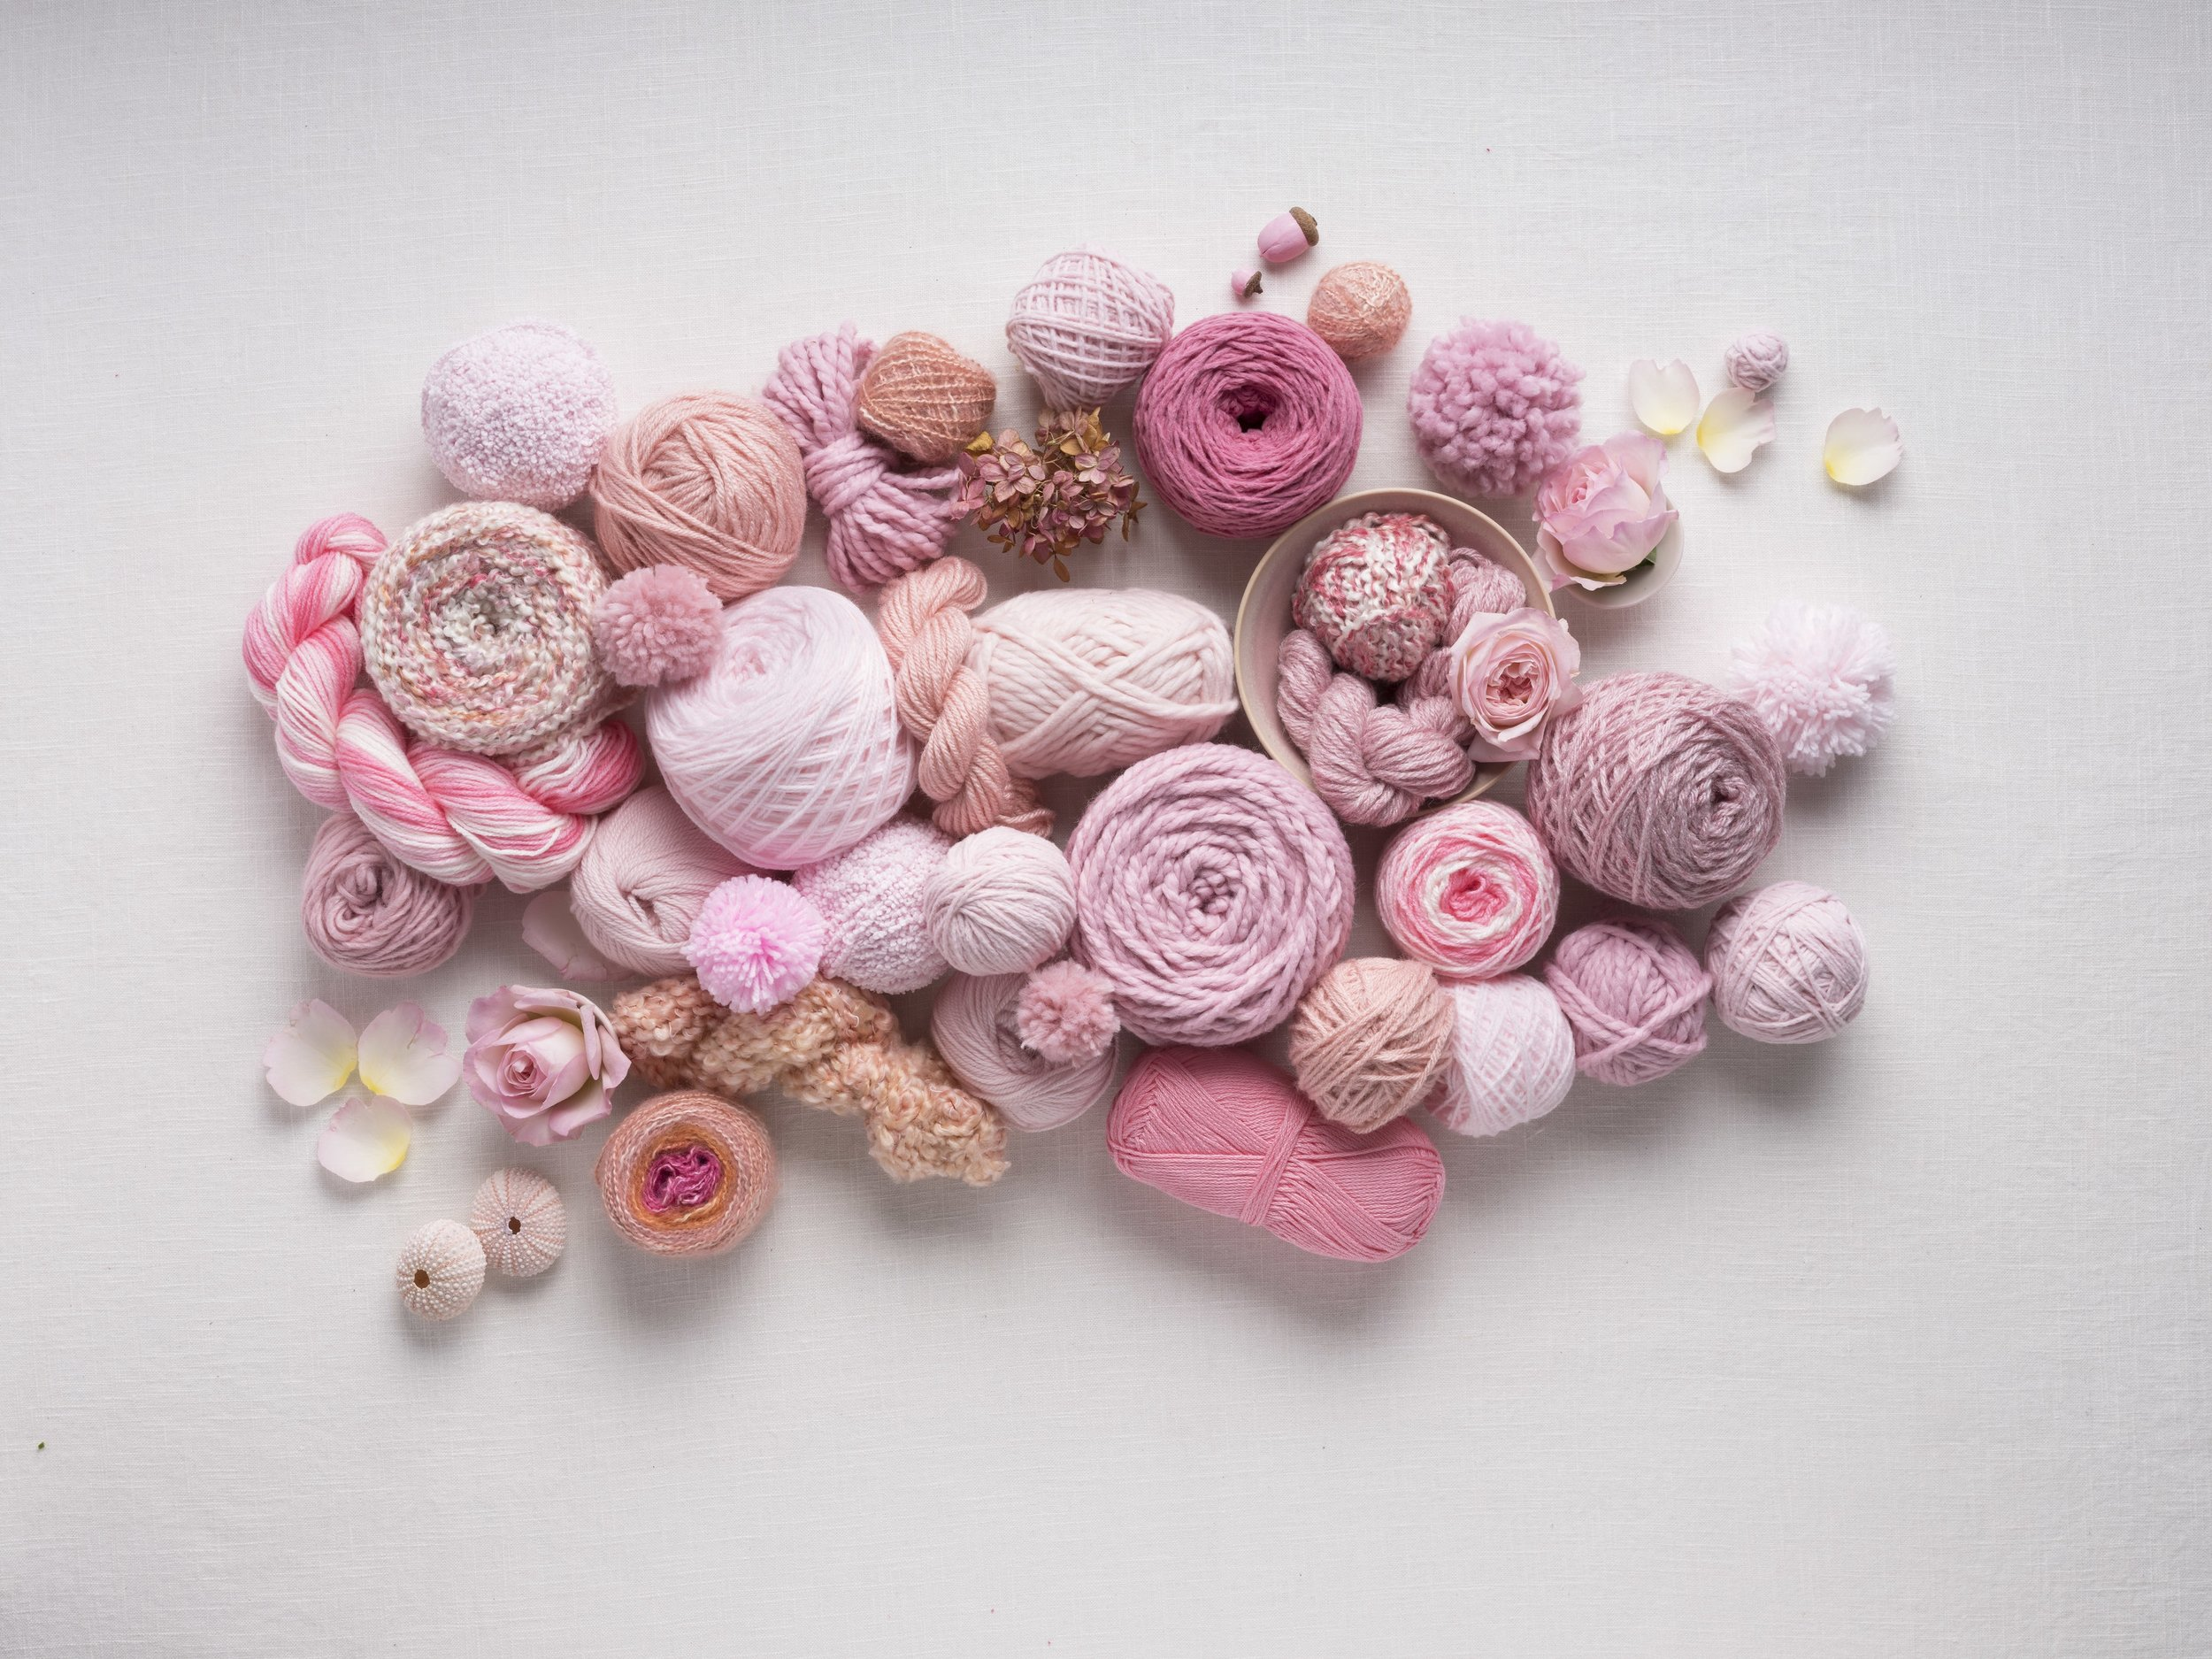 Antique colored yarns